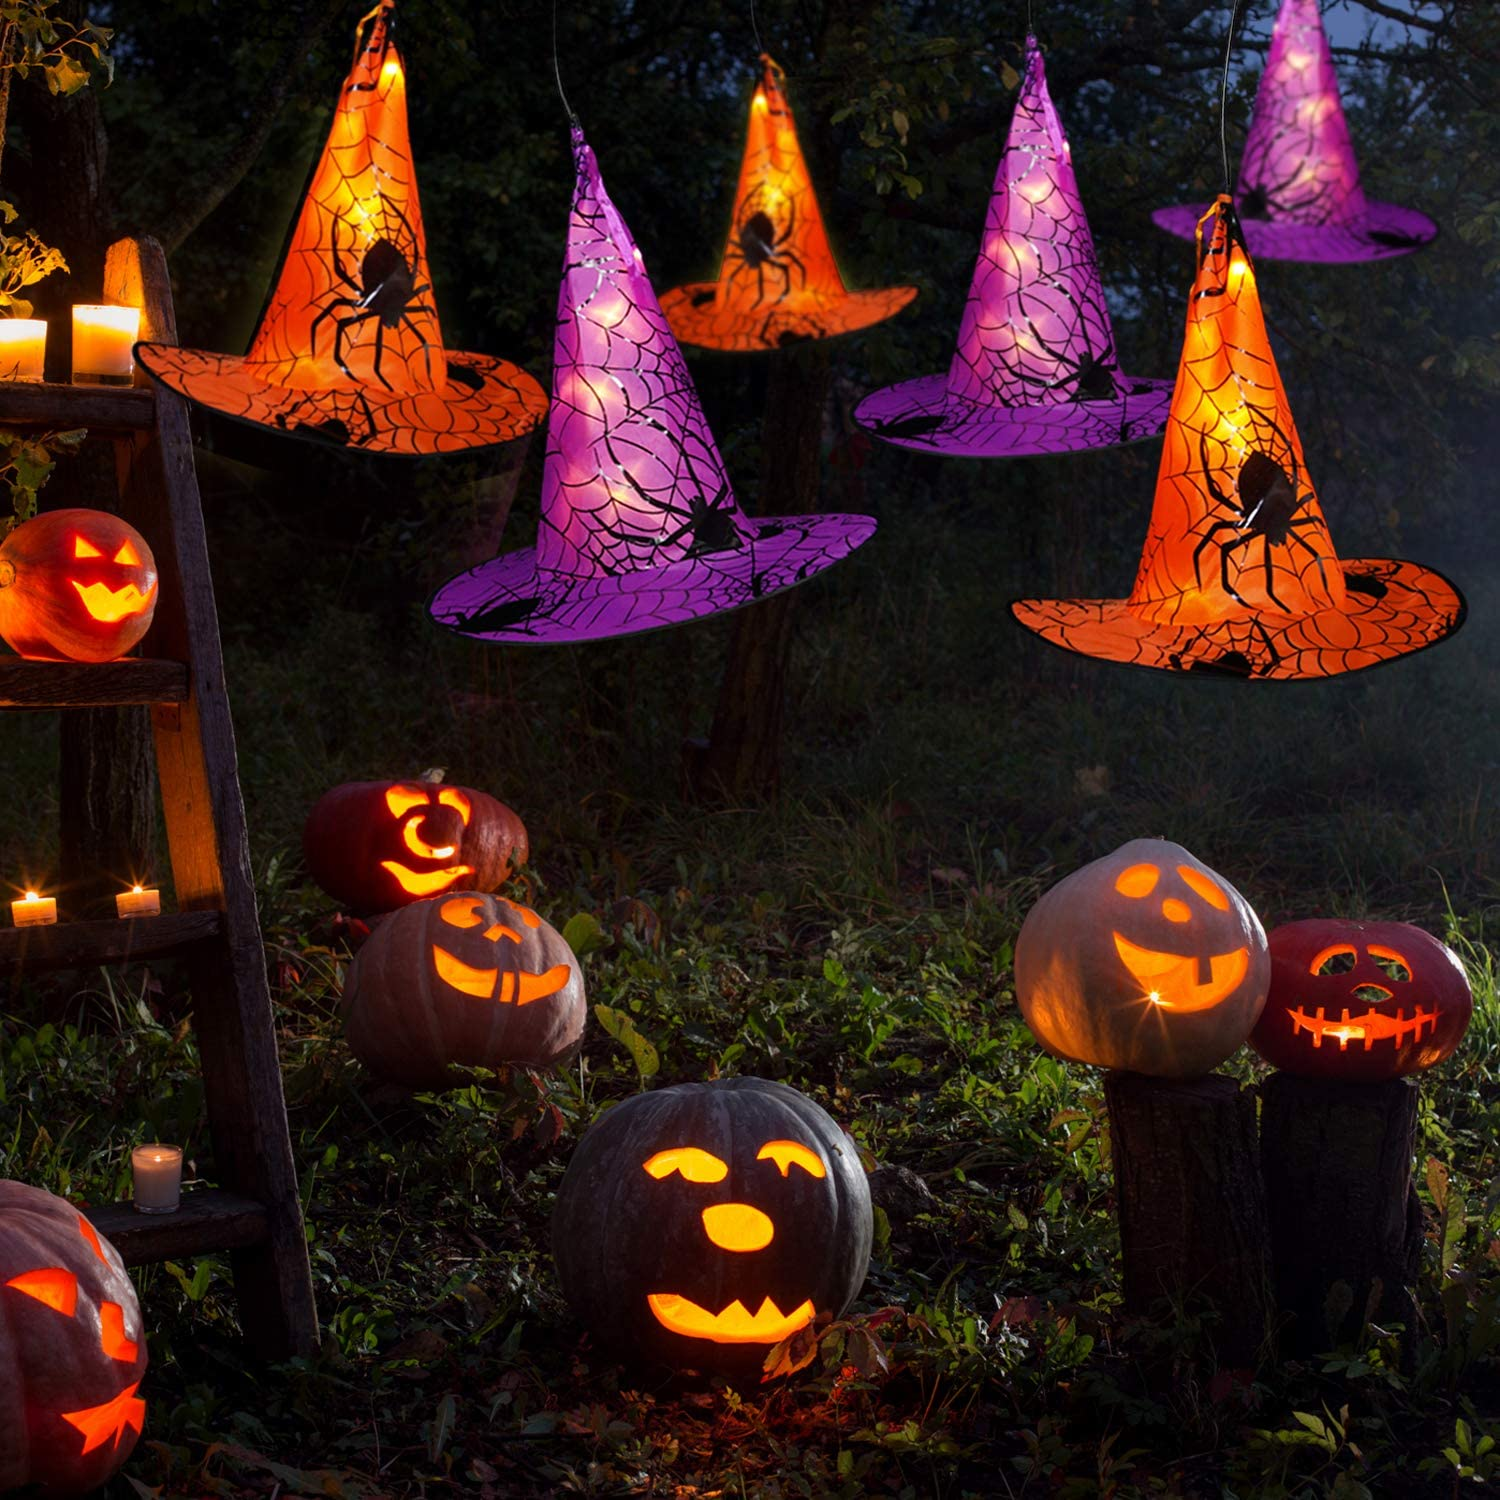 MJ PREMIER Halloween Decorations Witch Hat, Upgrade 10 Pcs Battery Powered Witches Hat String Light 18 ft. 8 Lighting Modes Waterproof Halloween Decor for Outdoor Indoor